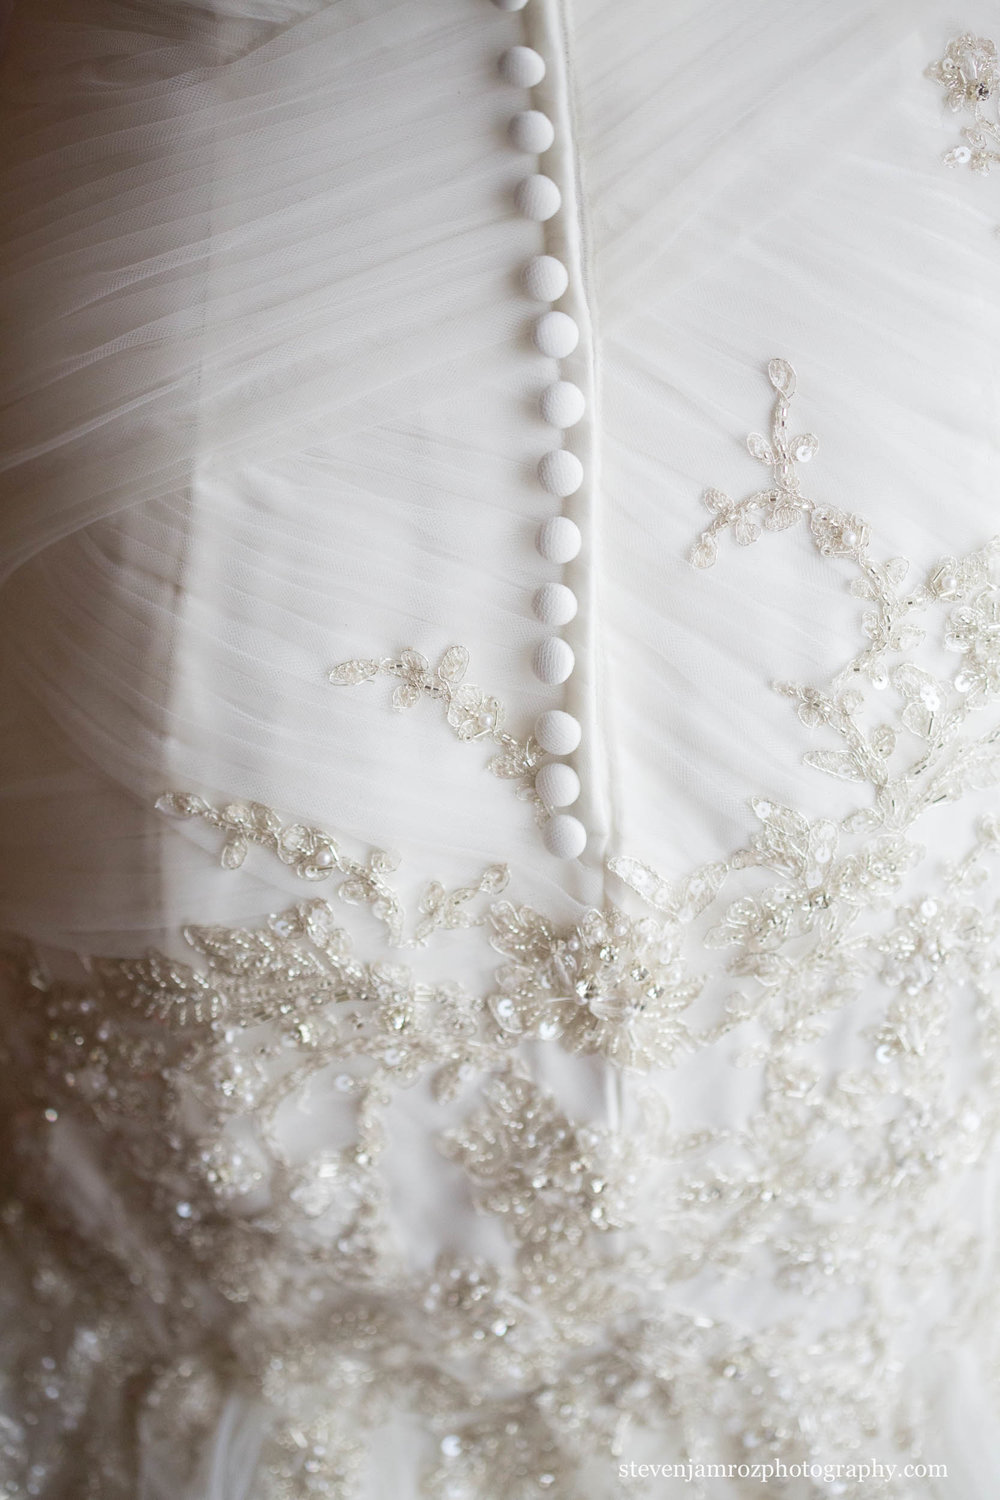 detail-photo-wedding-dress-raleigh-nc-steven-jamroz-photography-0145.jpg